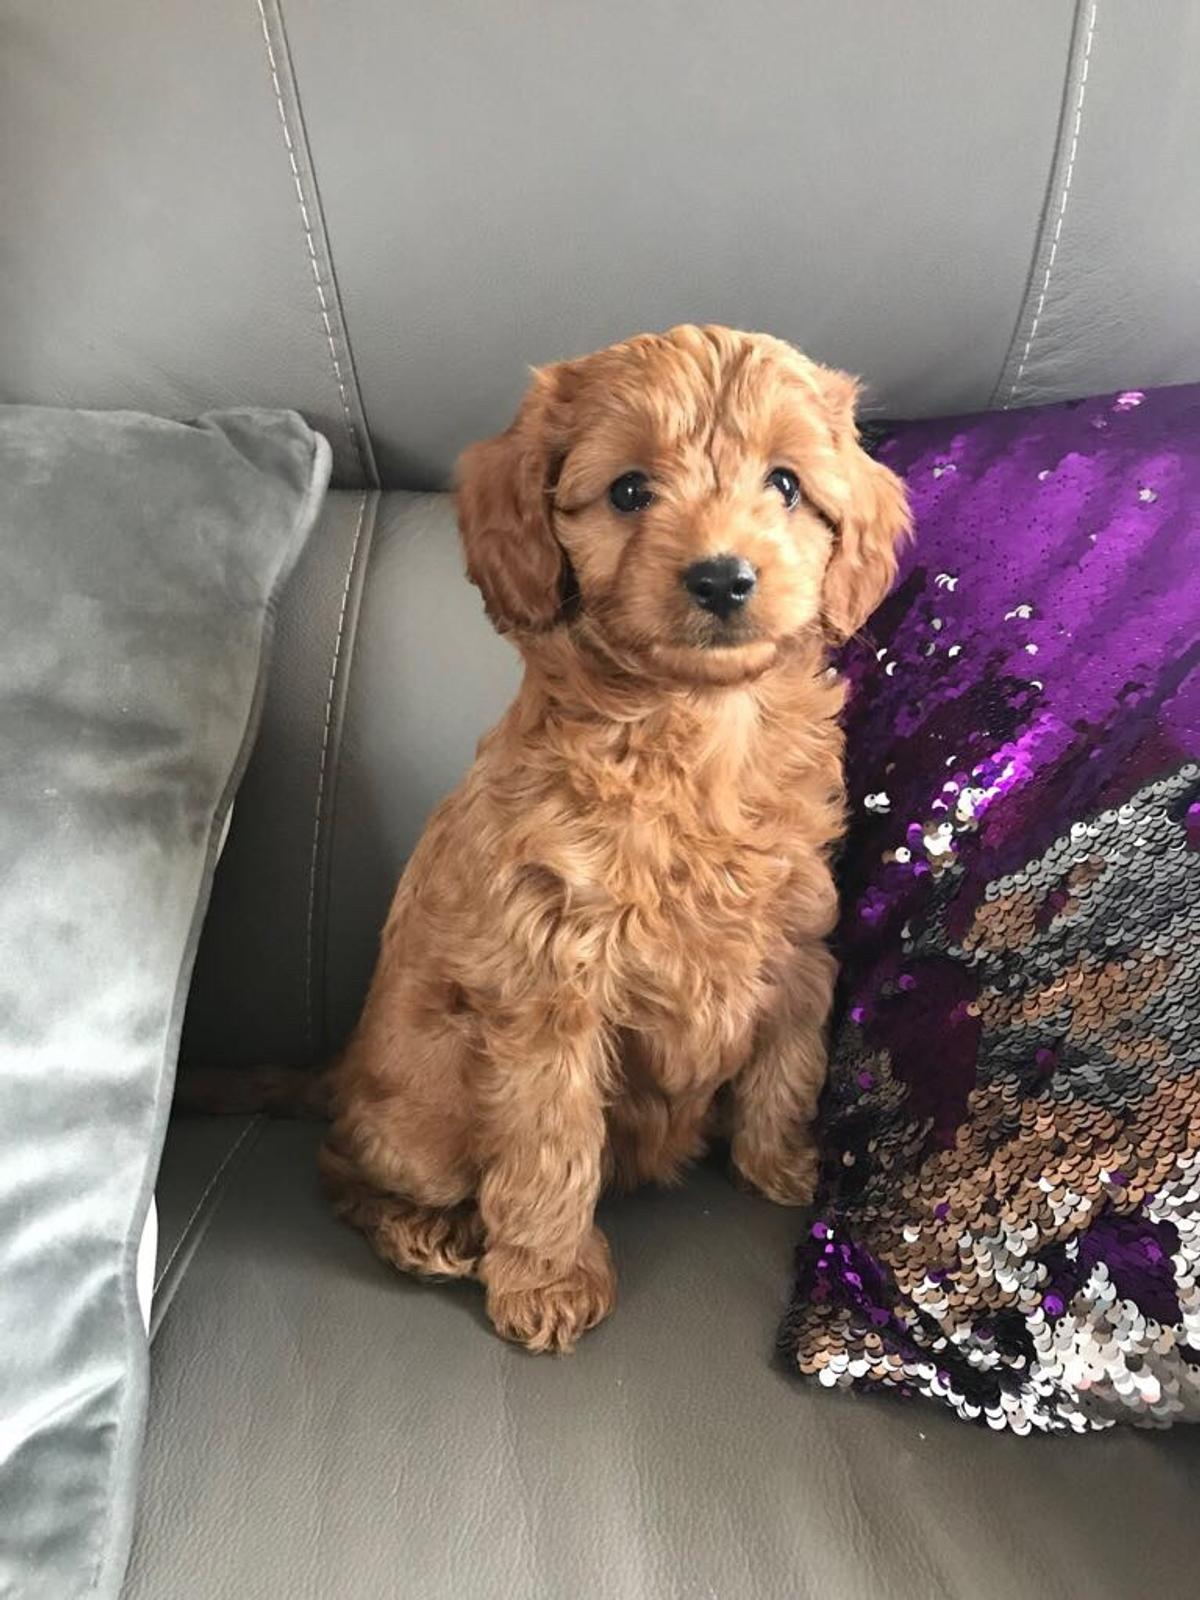 F1b toy cavapoo puppies price reduced in ST7-Lyme for